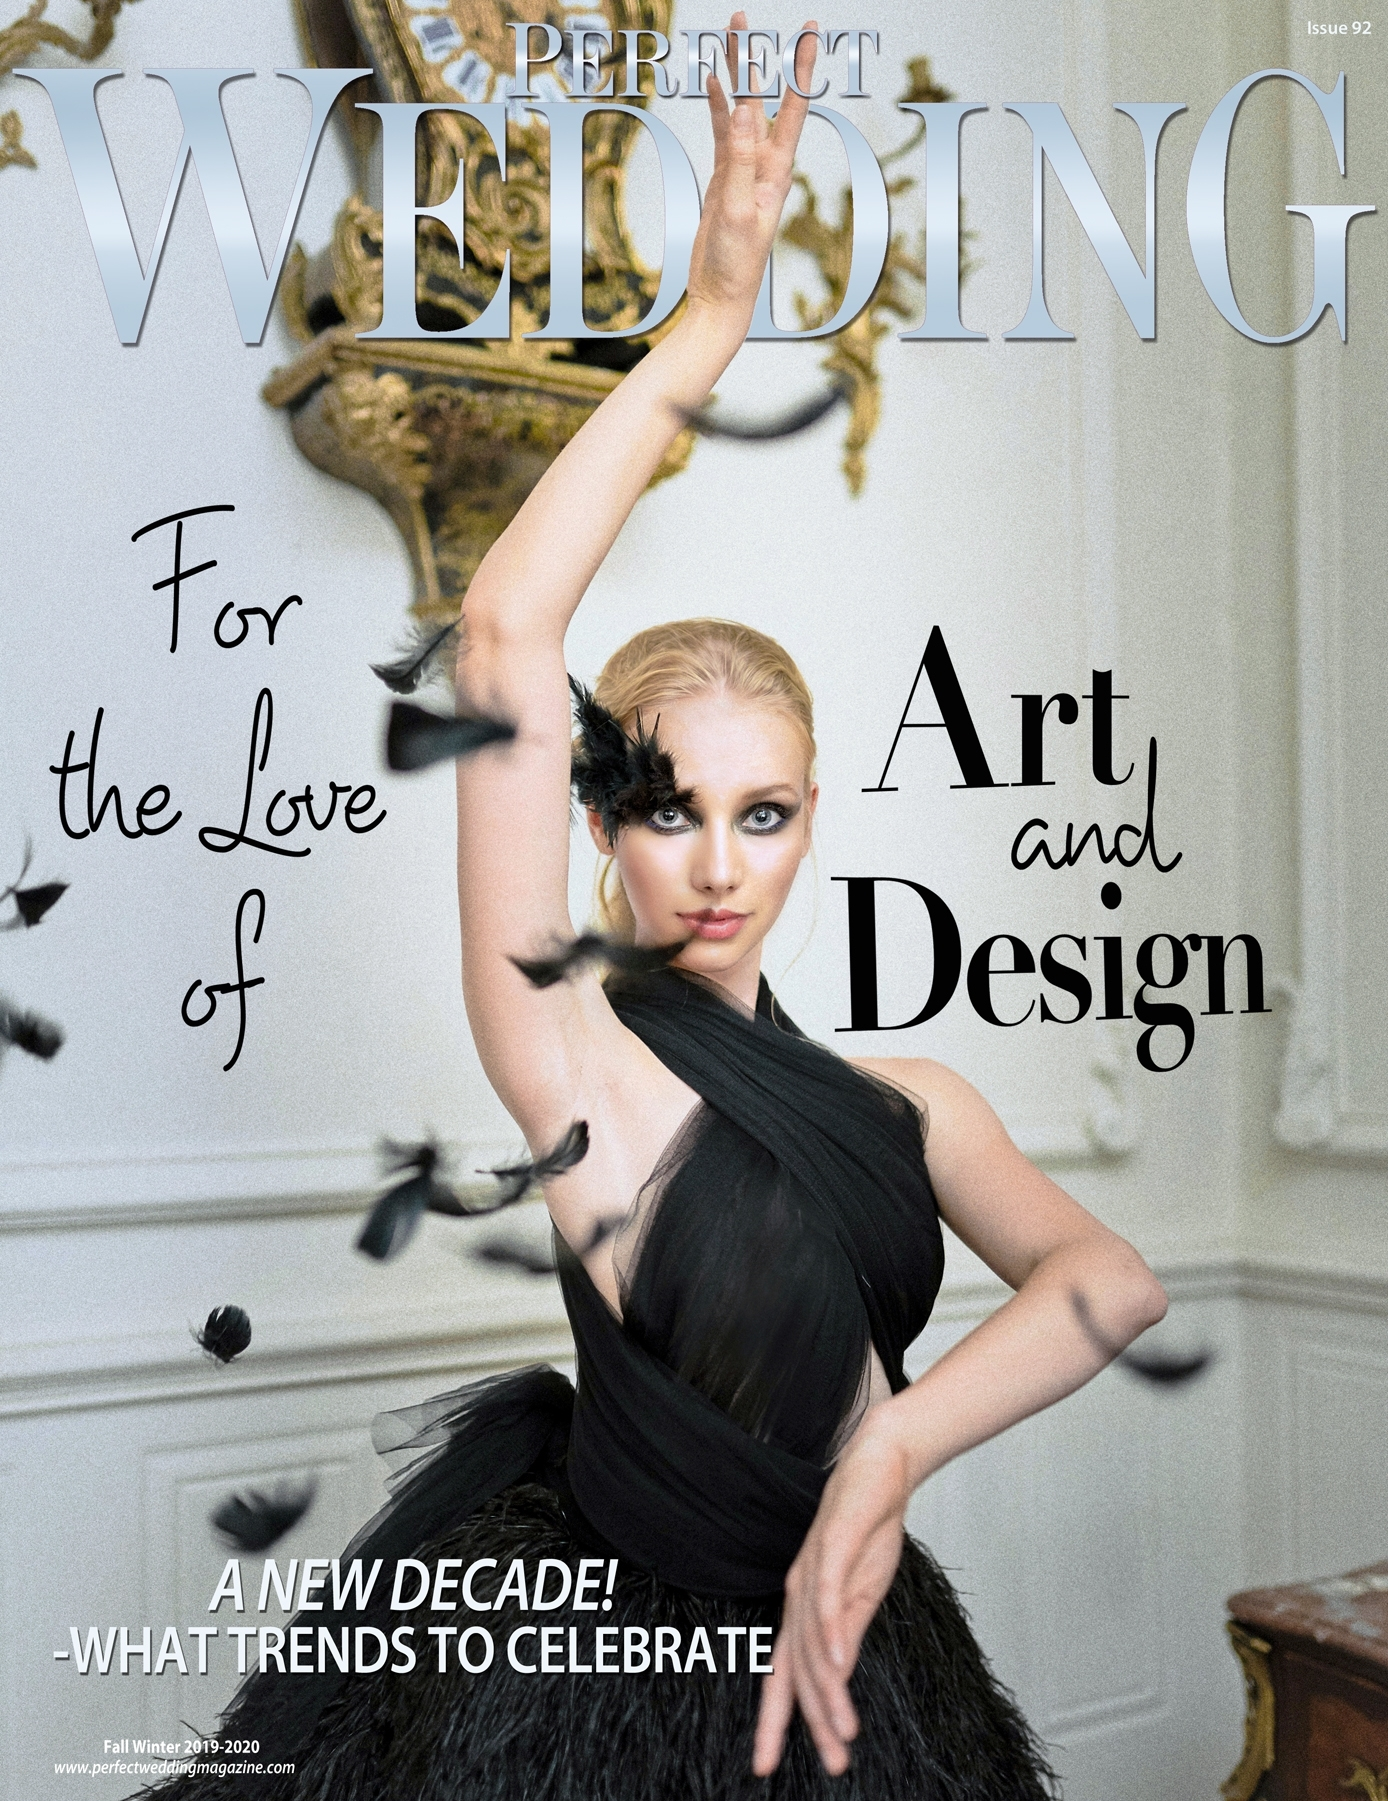 Free Magazine Subscriptions Perfect Wedding Magazine 'For the Love of Art and Design'